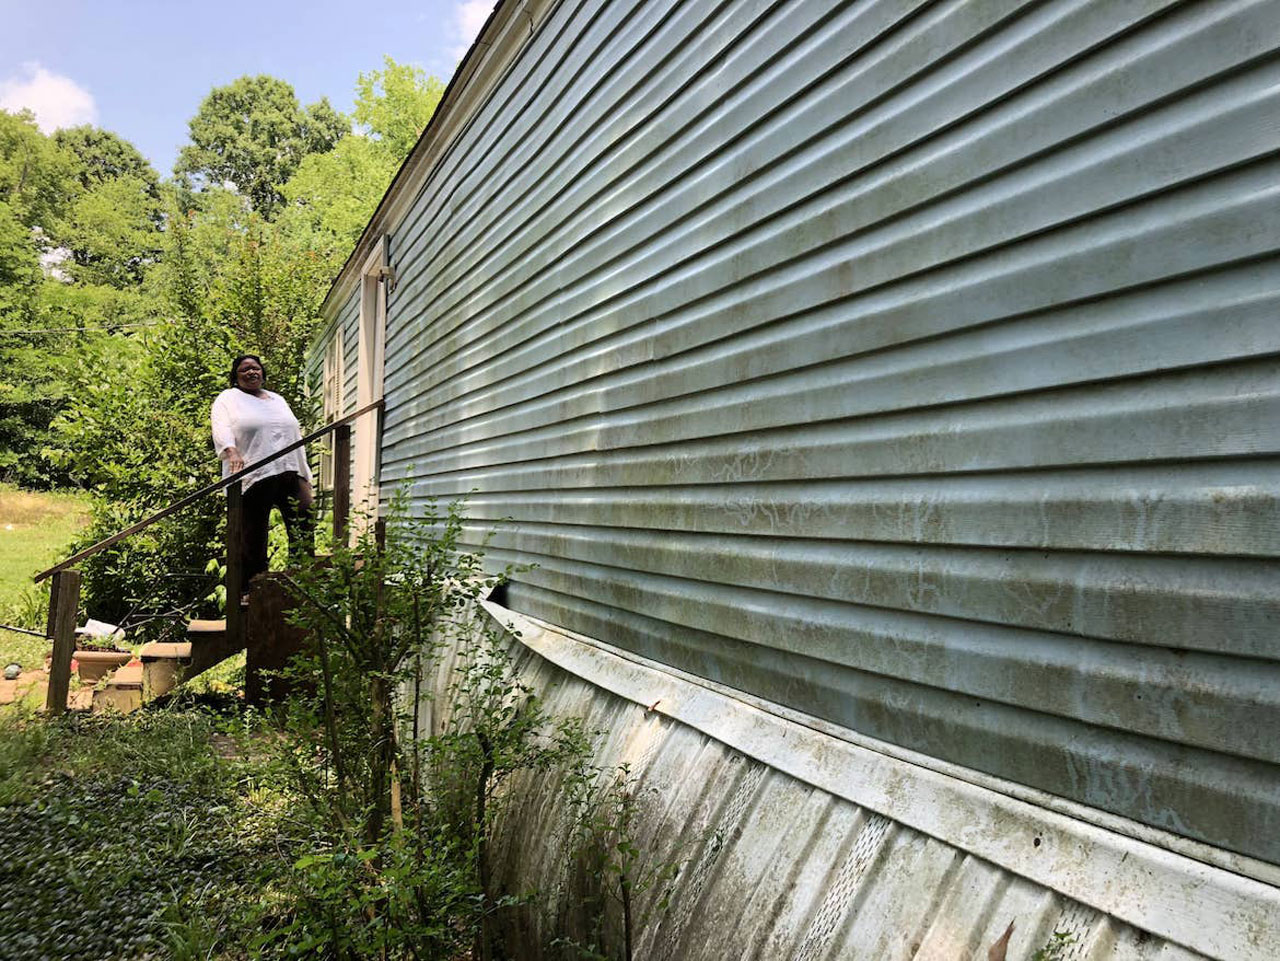 An African American woman stands on the steps to a mobile home, with shrubs in the foreground and trees in the background